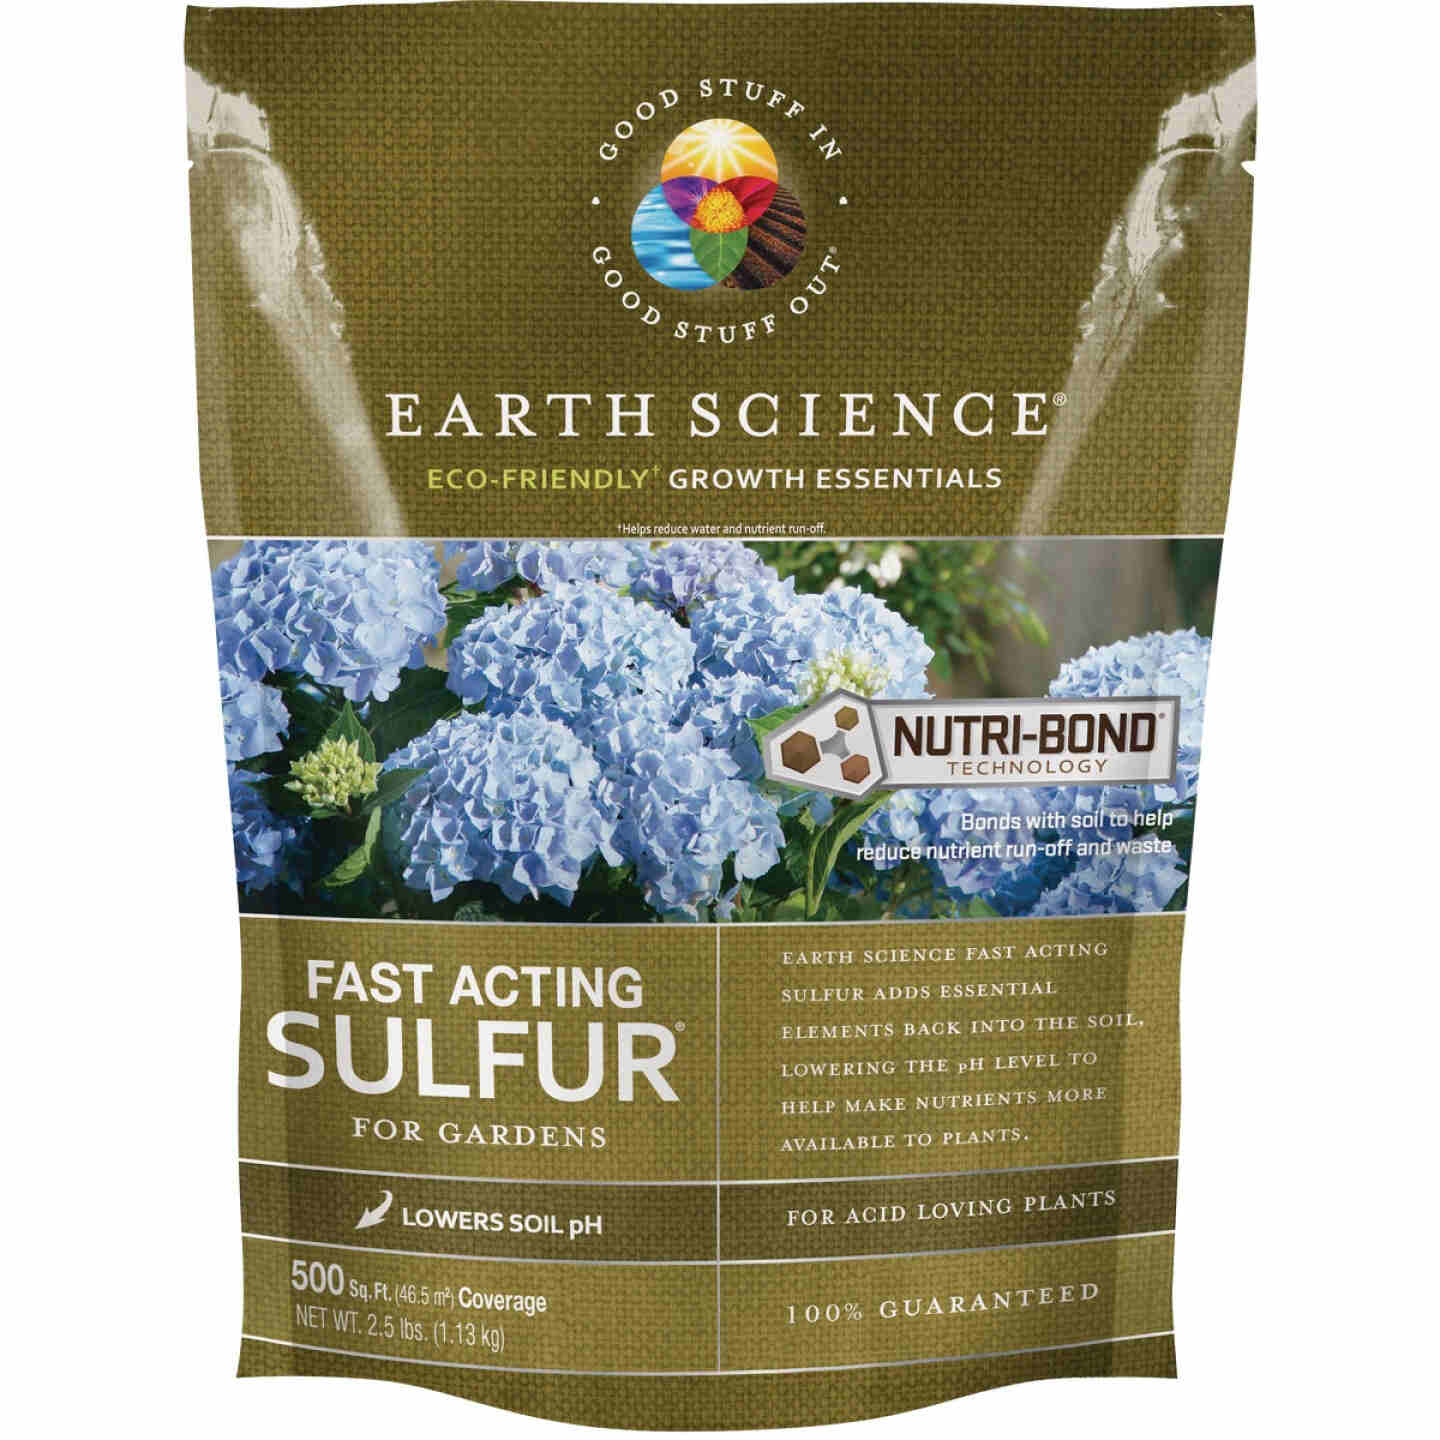 Earth Science 2.5 Lb. 500 Sq. Ft. Coverage Fast Acting Sulfur Image 1